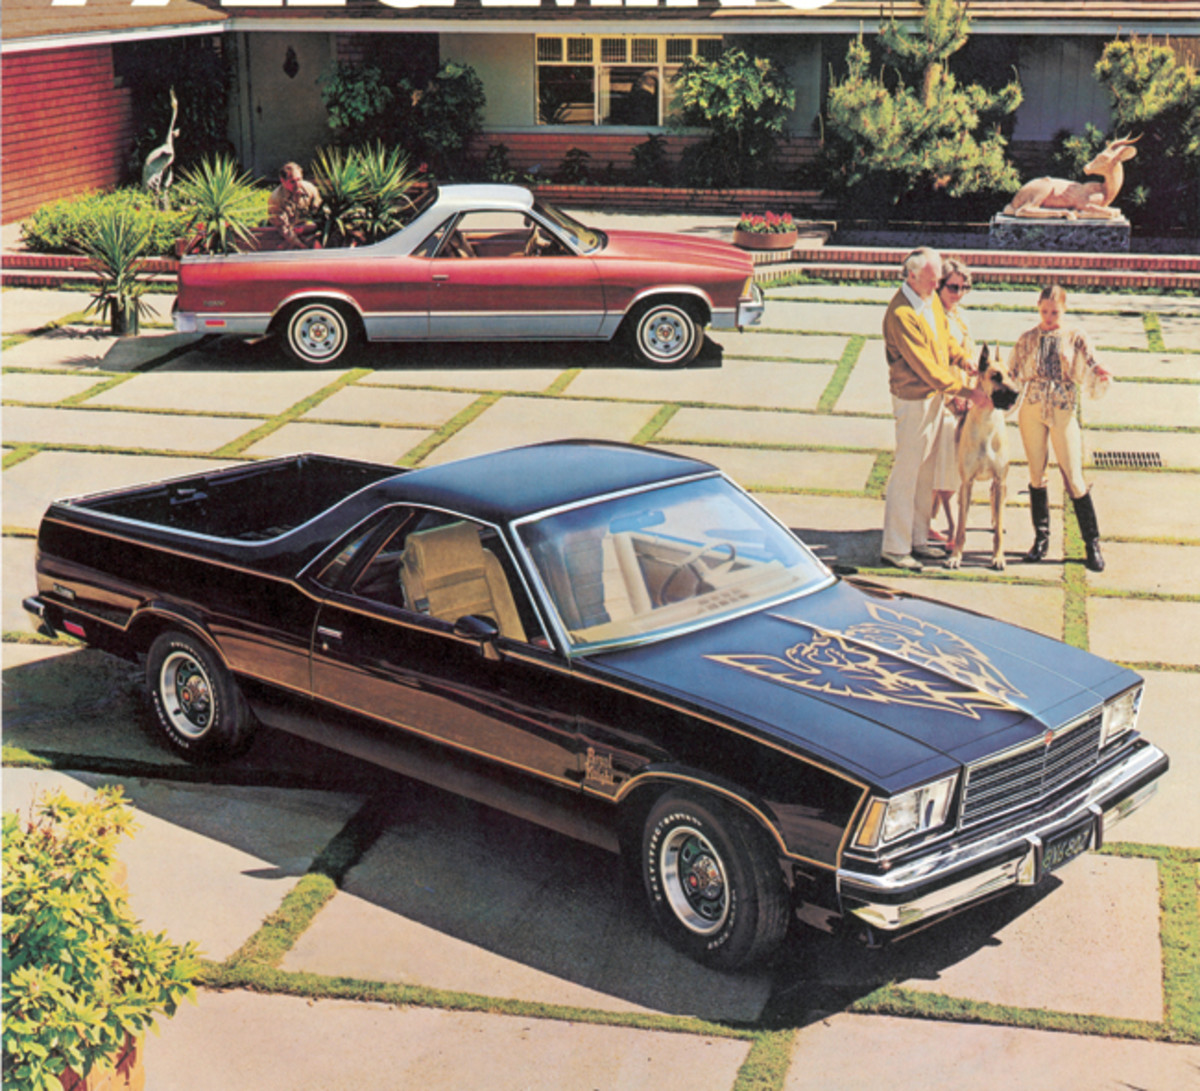 The Royal Knight package for 1979 helped dress up the El Camino SS with a distinctive paint and decal scheme.